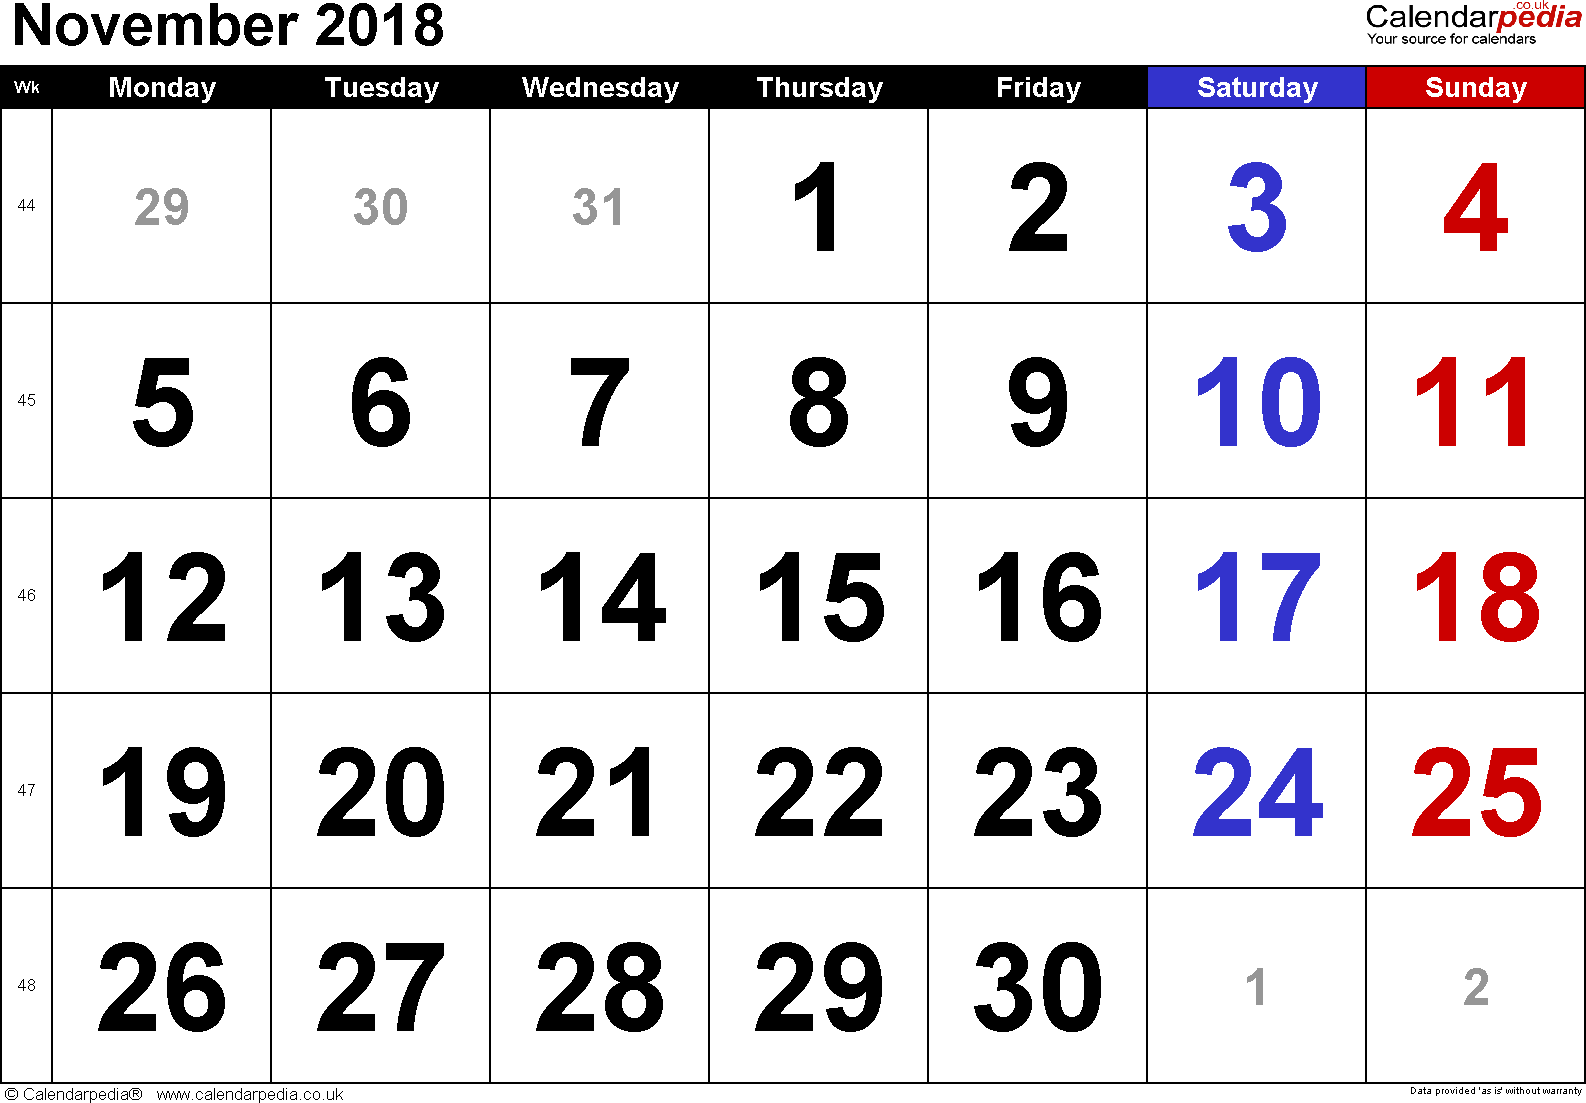 Calendar November 2018, landscape orientation, large numerals, 1 page, with UK bank holidays and week numbers